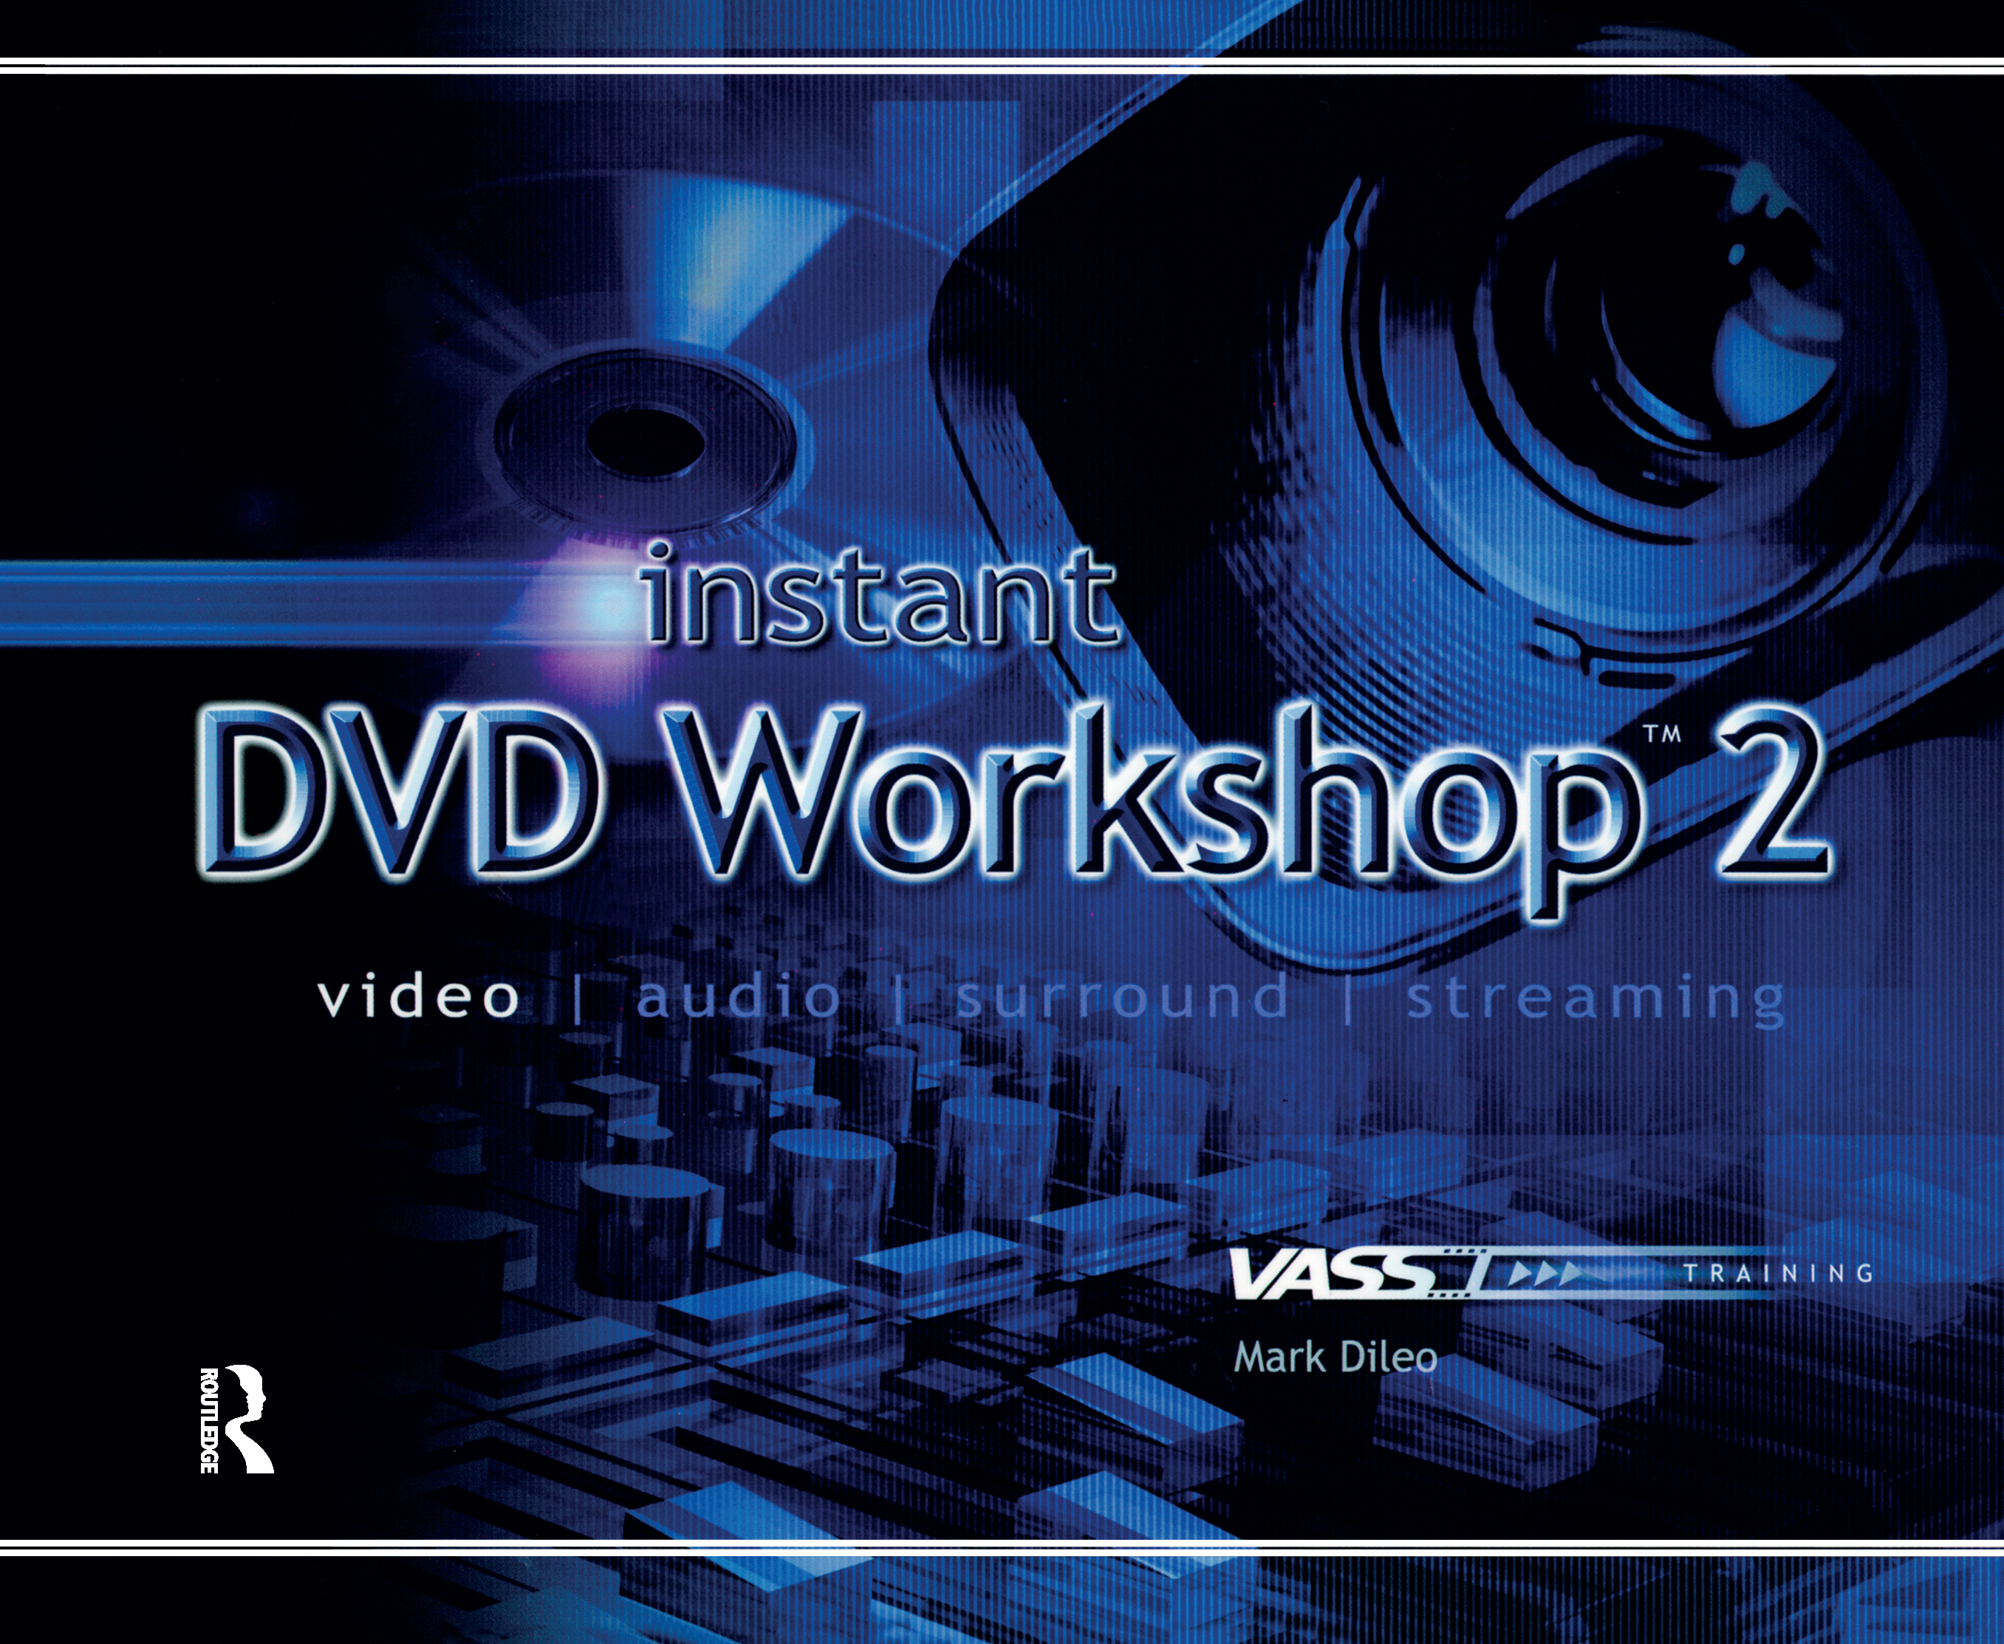 Instant DVD Workshop 2